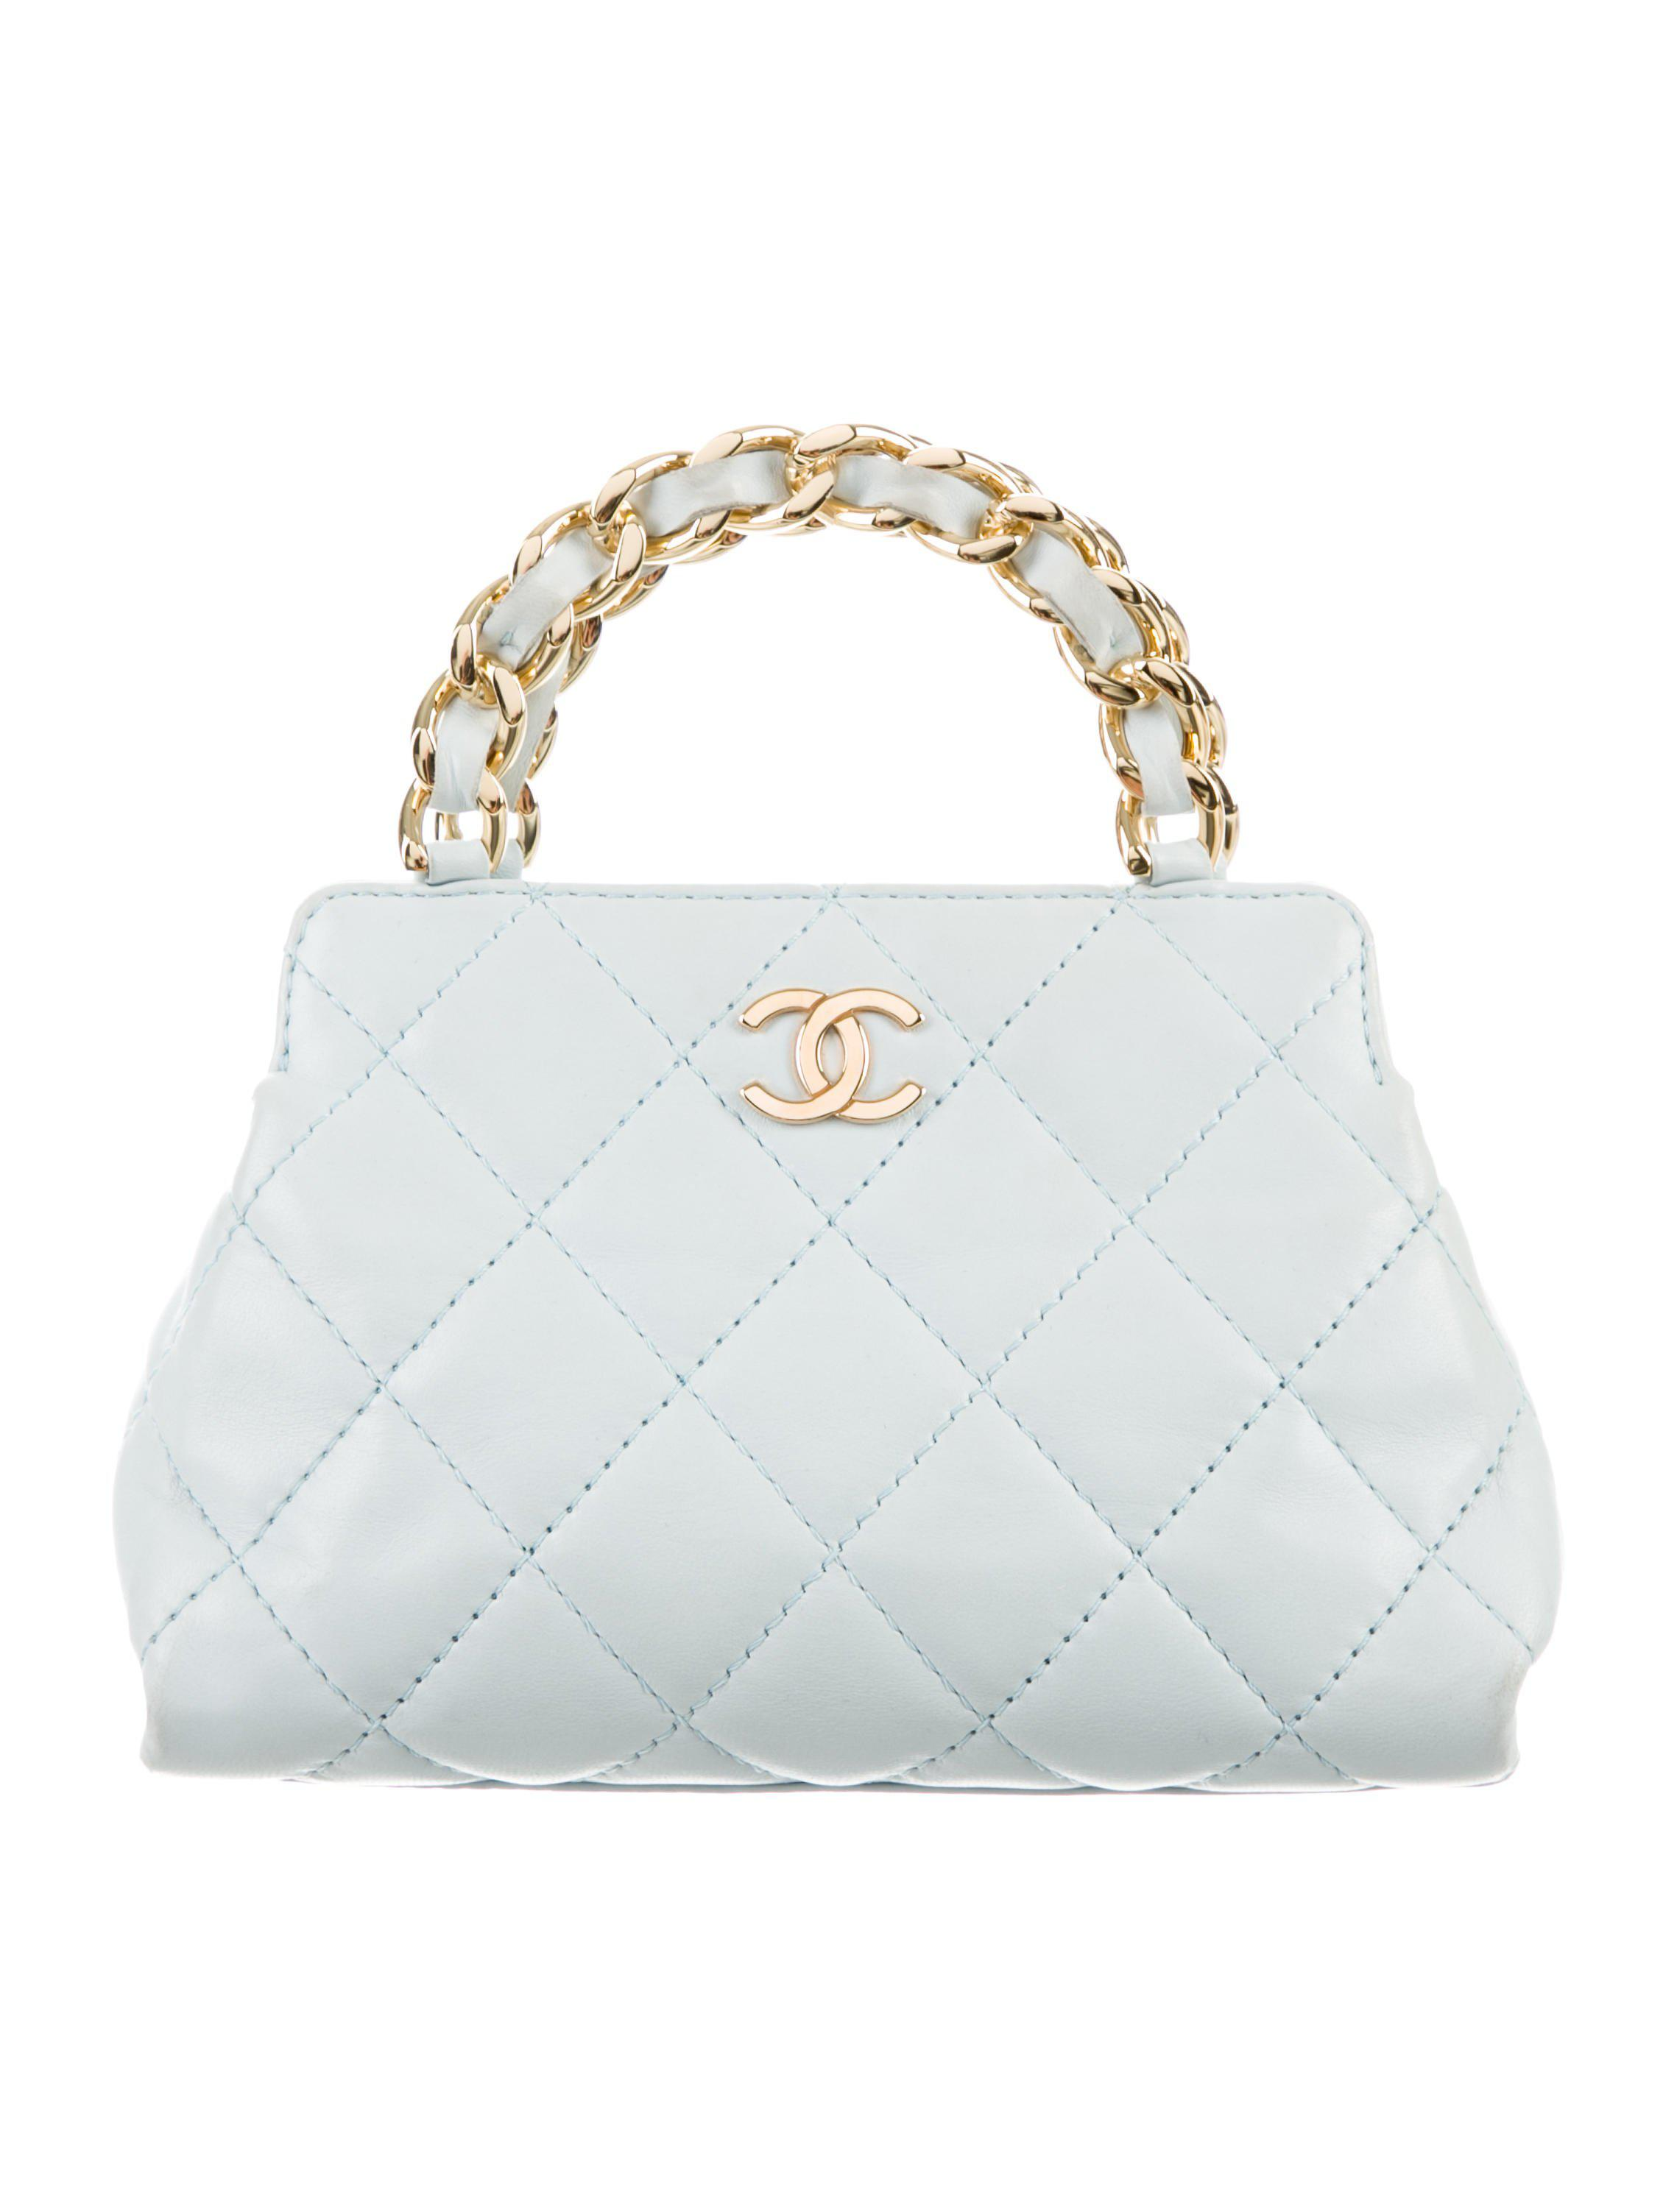 fd13d28fa081 Lyst - Chanel Mini Lambskin Evening Bag Blue in Metallic